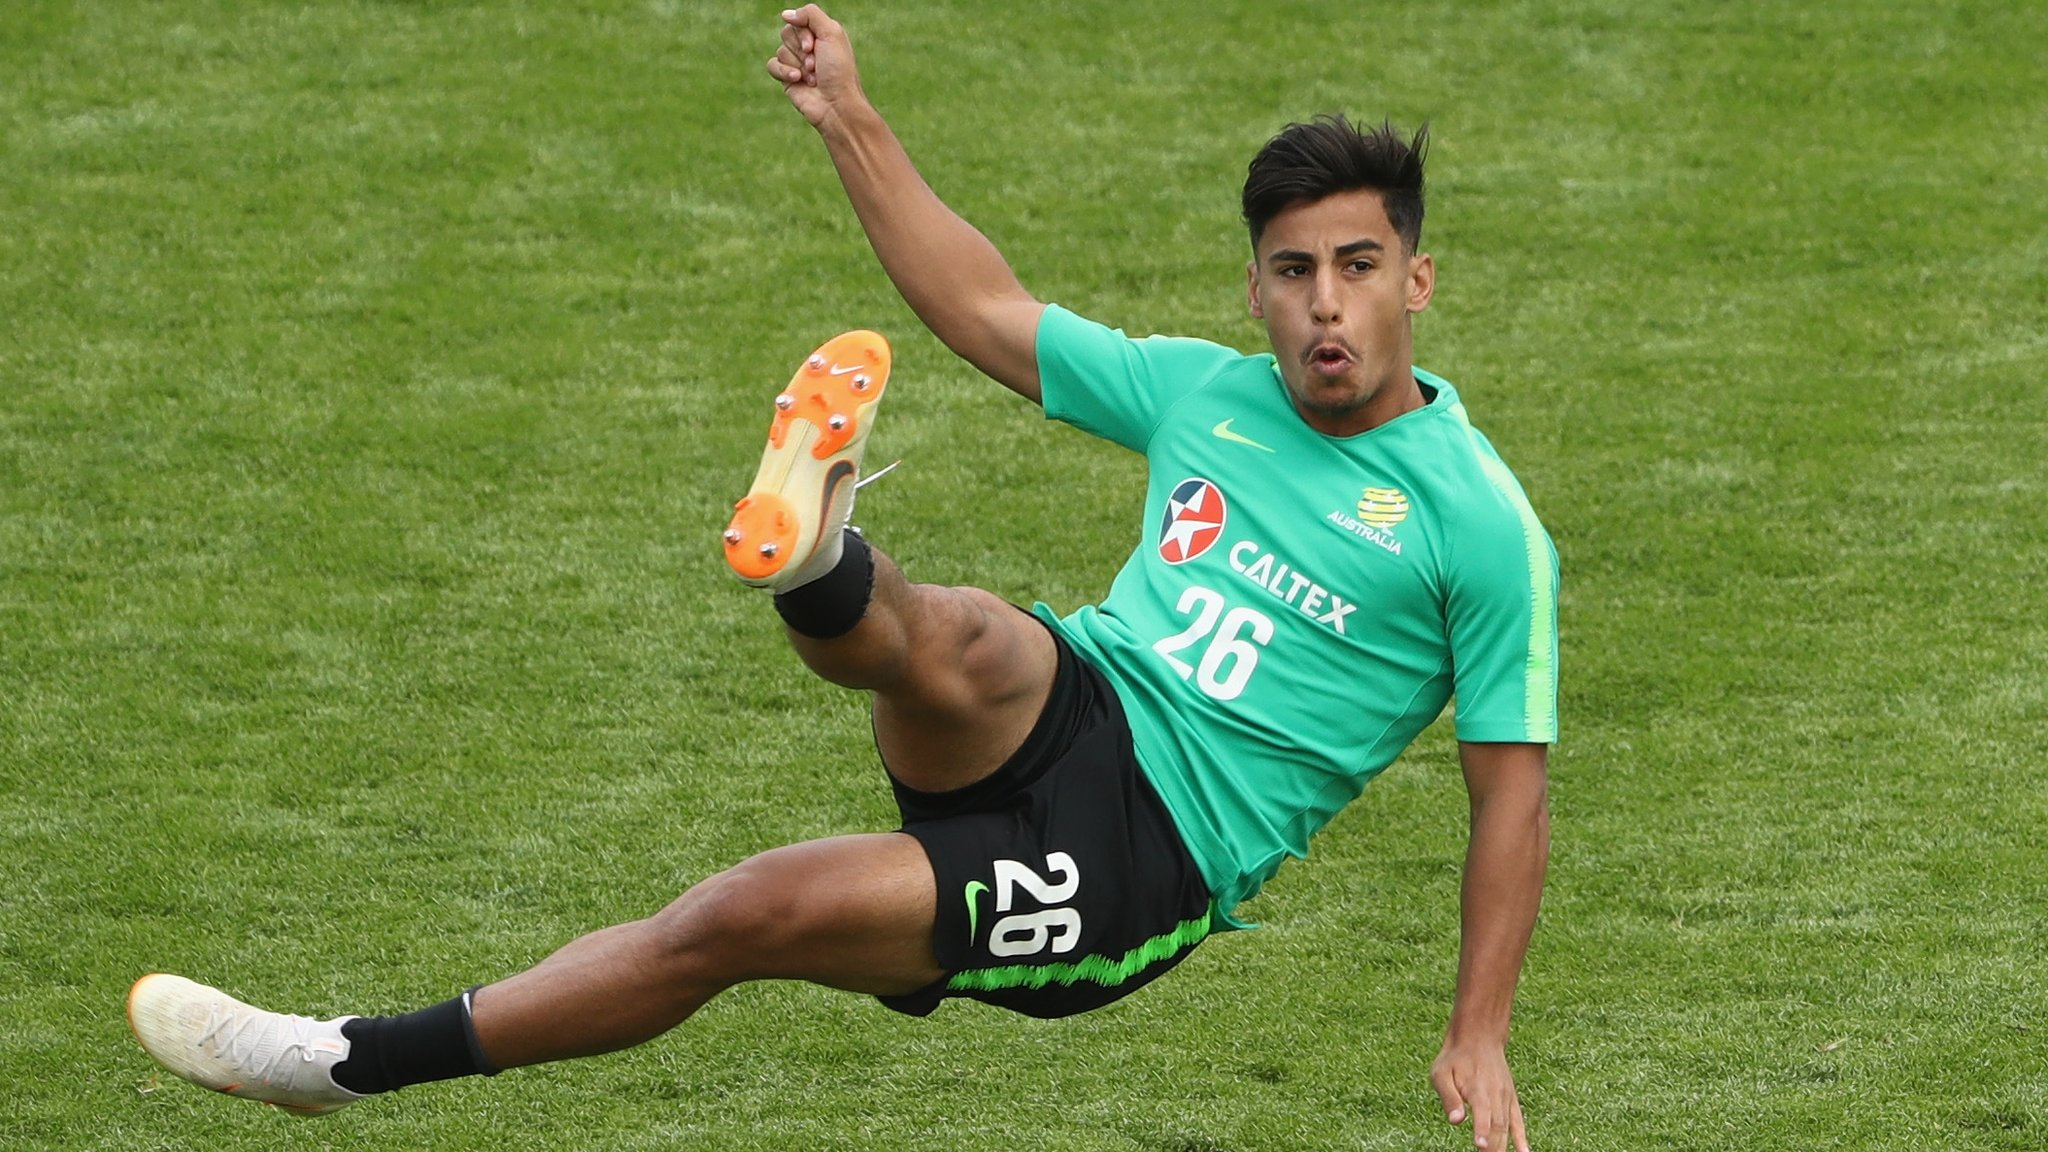 Aussie winger Arzani joins Celtic on loan from Man City